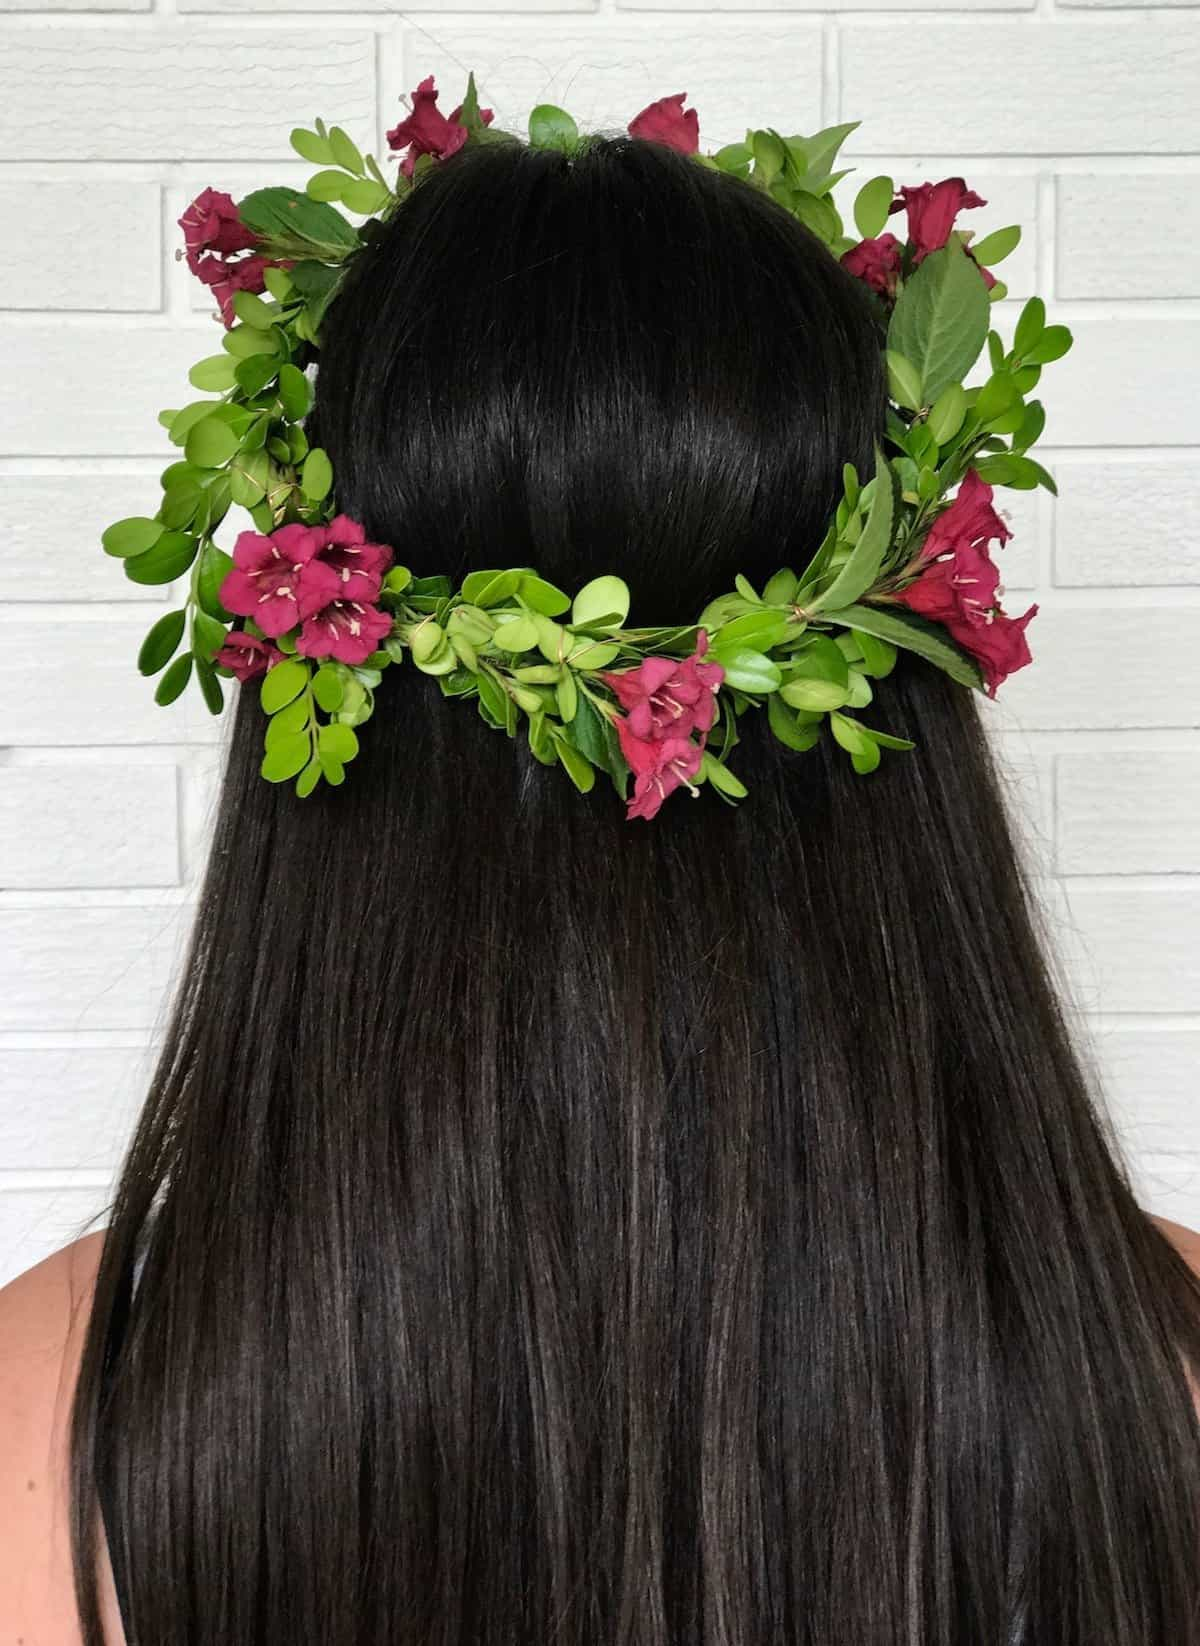 How To Make A Flower Crown With Real Flowers Home For The Harvest